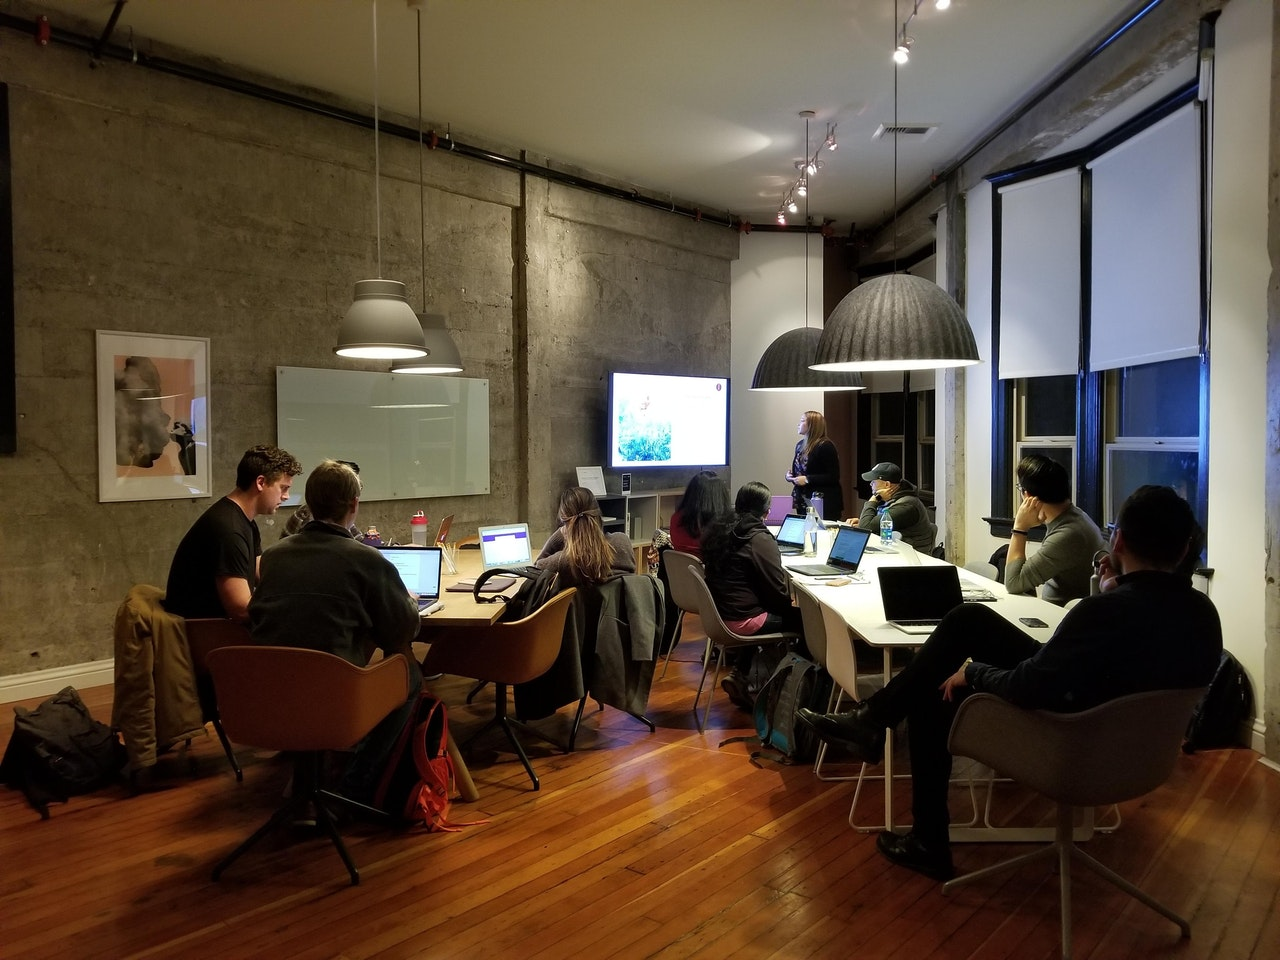 A modern office with people working around different desks